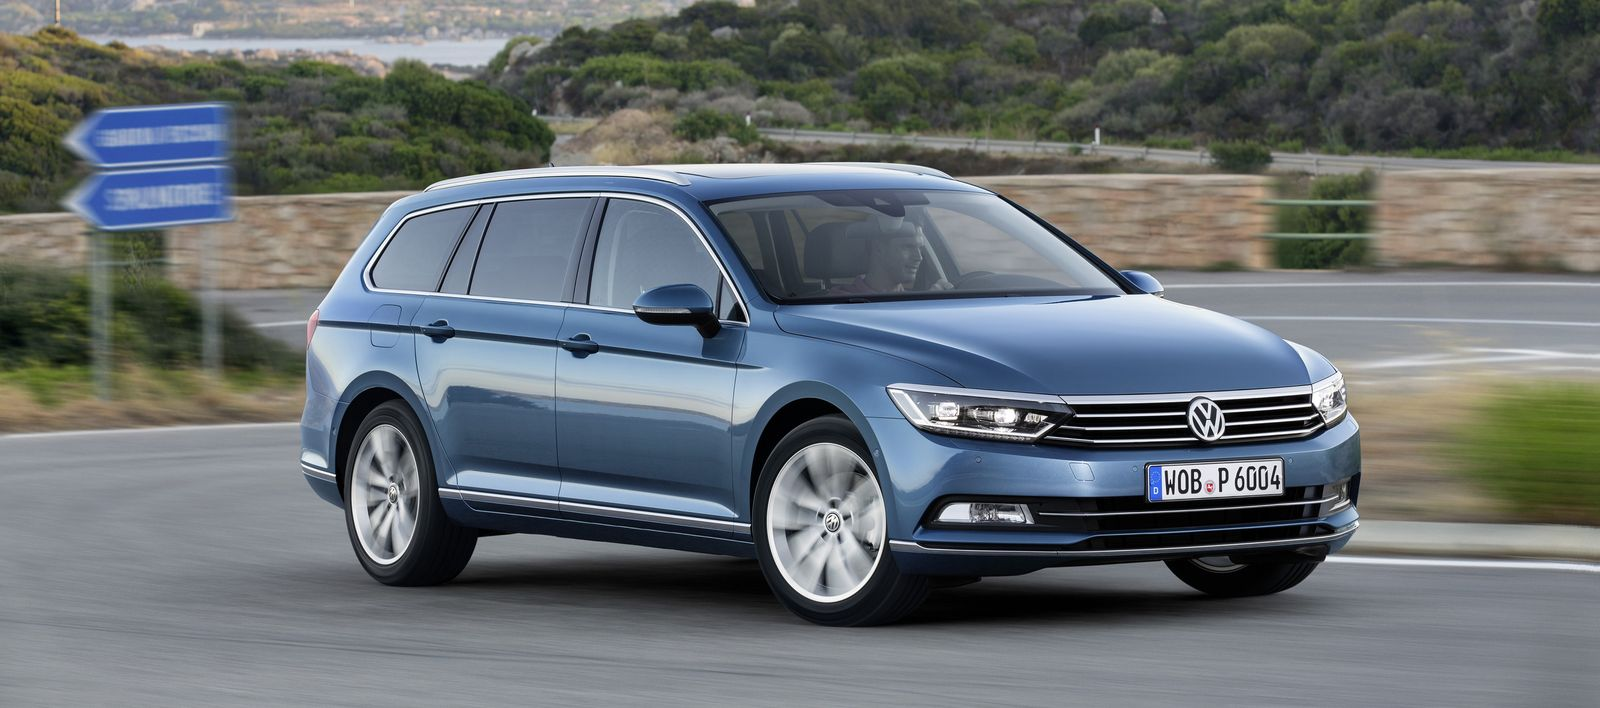 Top 10 Large Family Cars: The 10 Best Large Family Cars